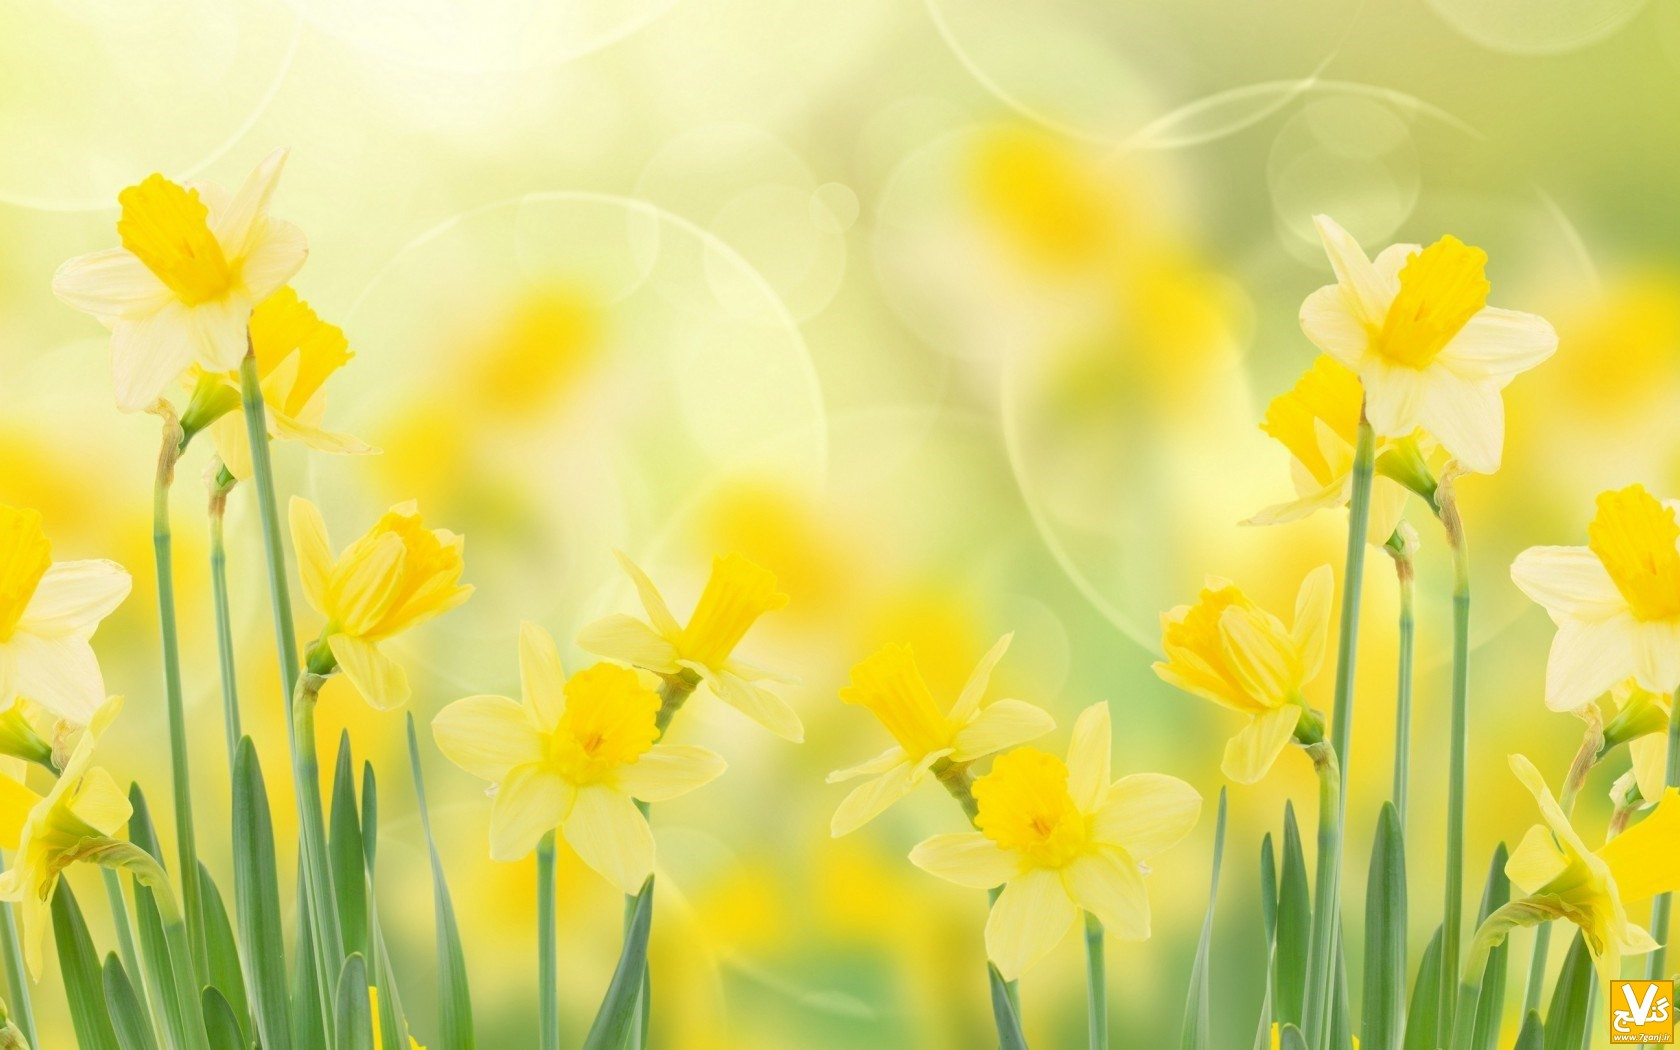 daffodils-spring-wallpaper-1680x1050